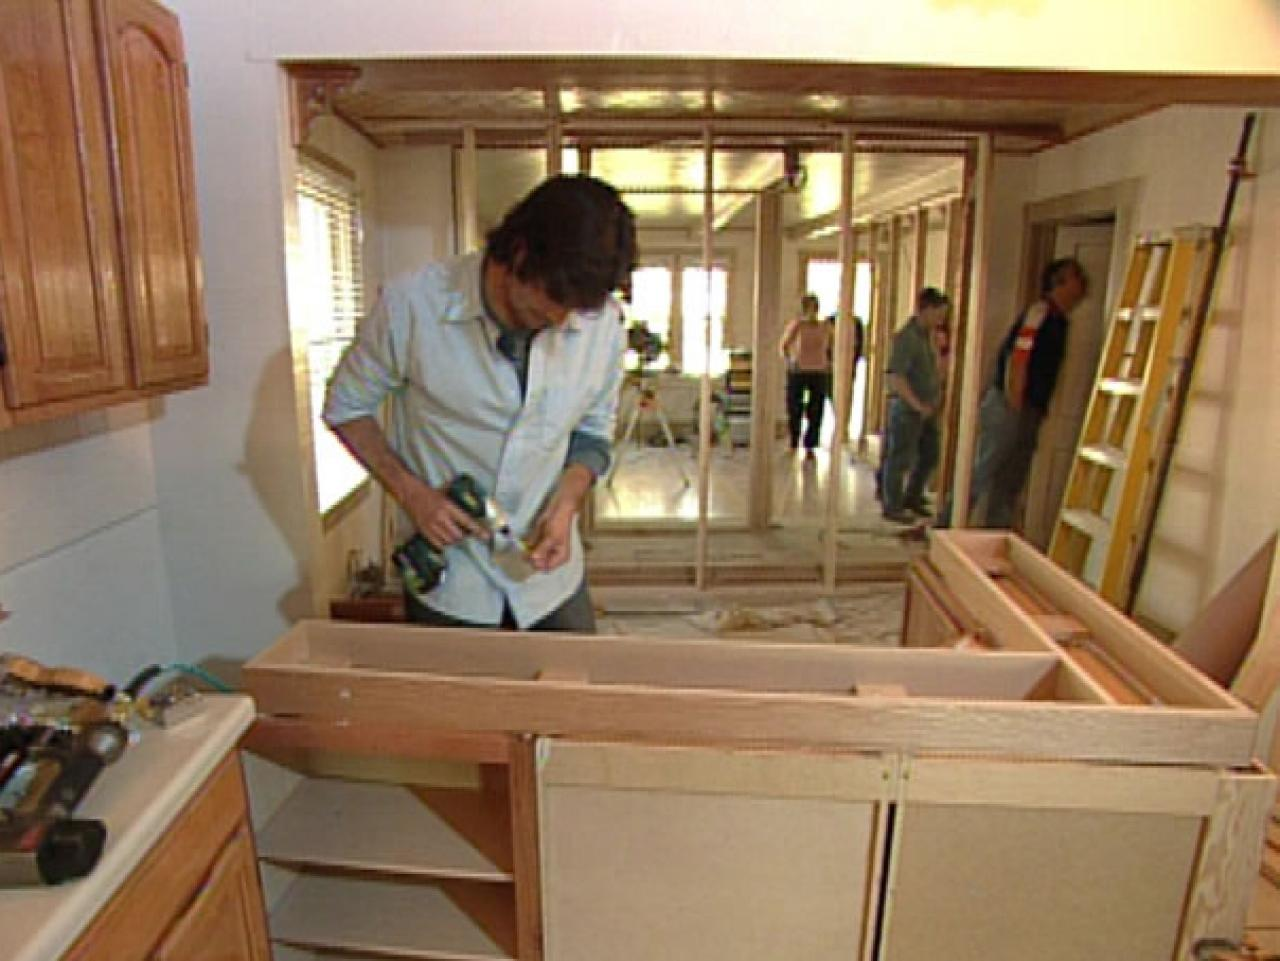 How To Building A Kitchen Island With Cabinets HGTV - How to build a kitchen island with cabinets